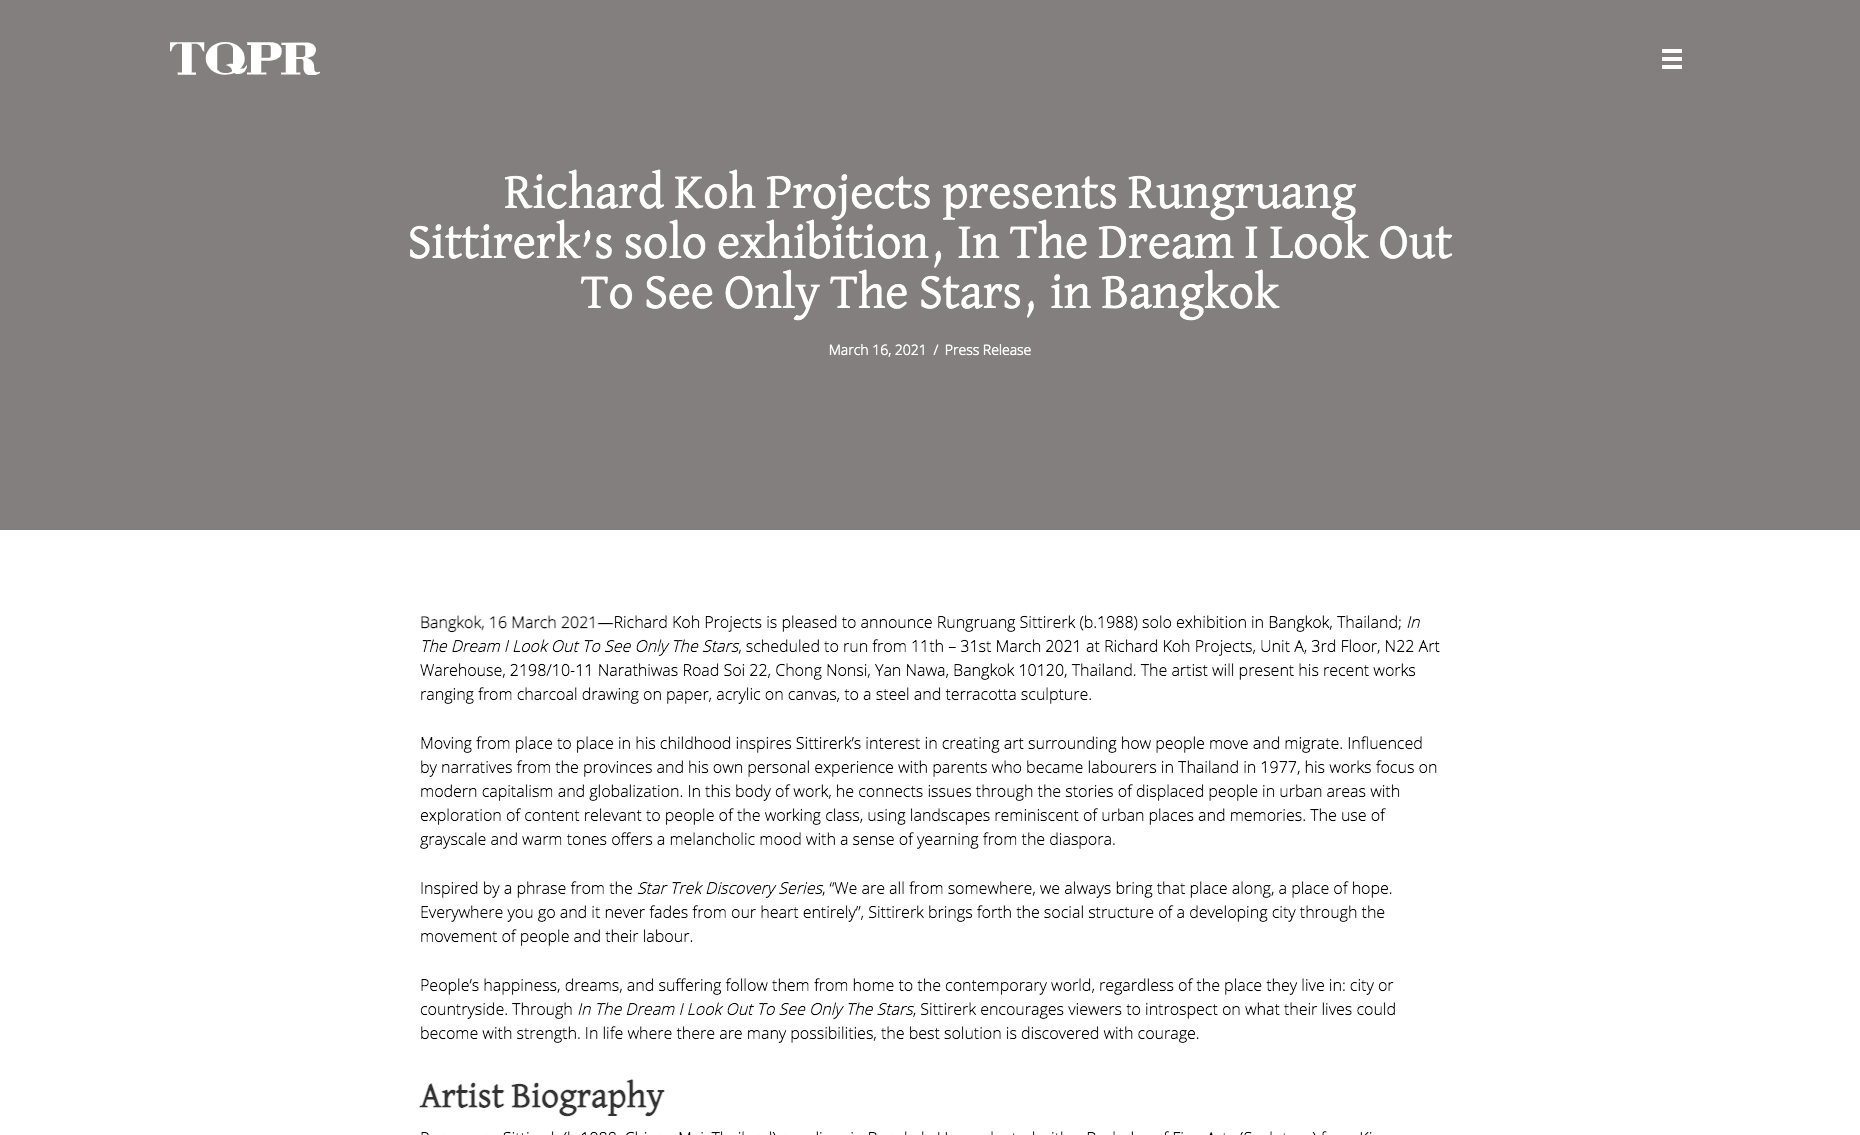 TQPR – Richard Koh Projects presents Rungruang Sittirerk's solo exhibition, In The Dream I Look Out To See Only The Stars, in Bangkok